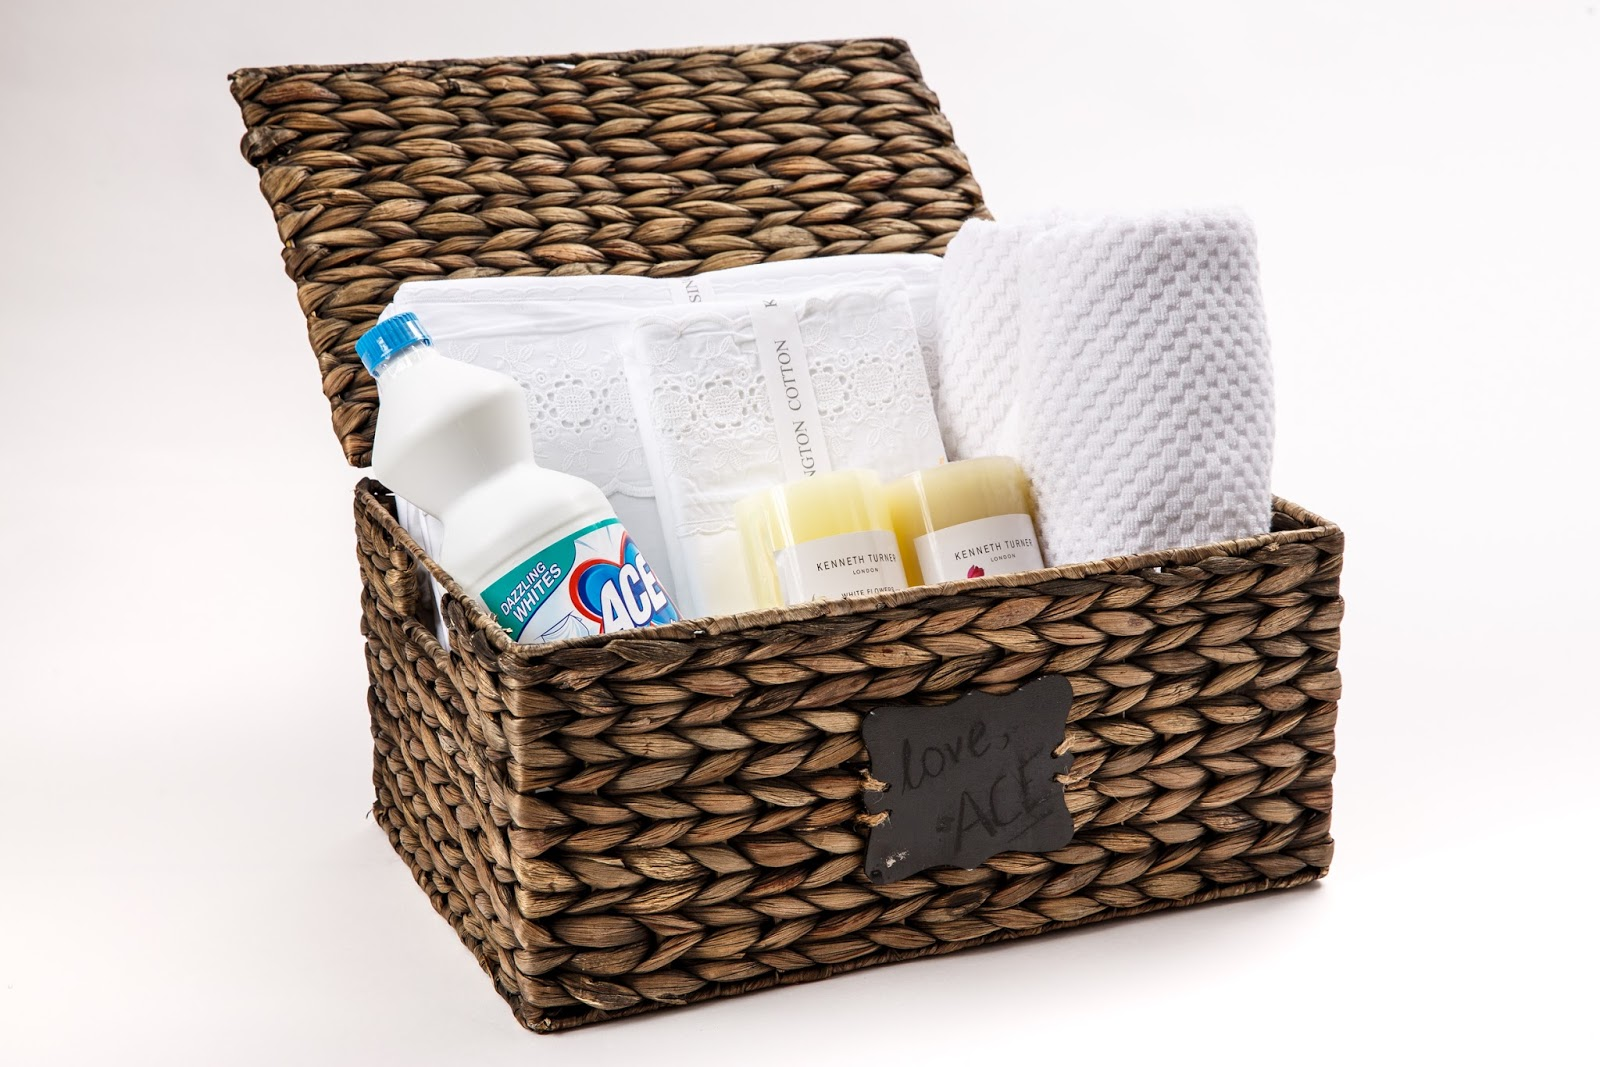 Pamper hamper prize from Ace